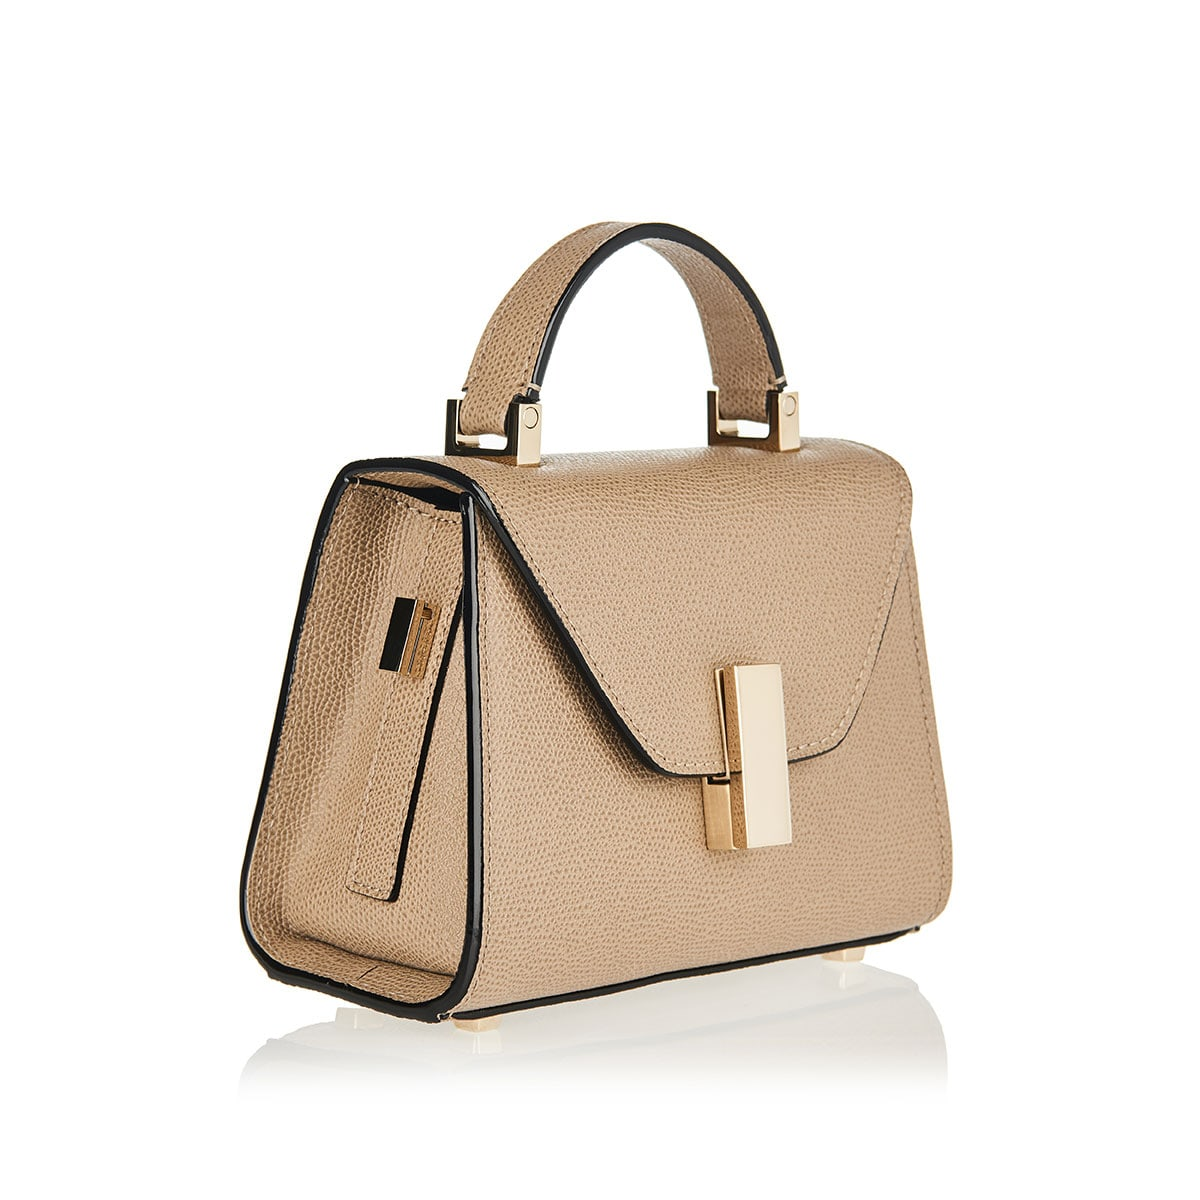 Iside micro leather bag